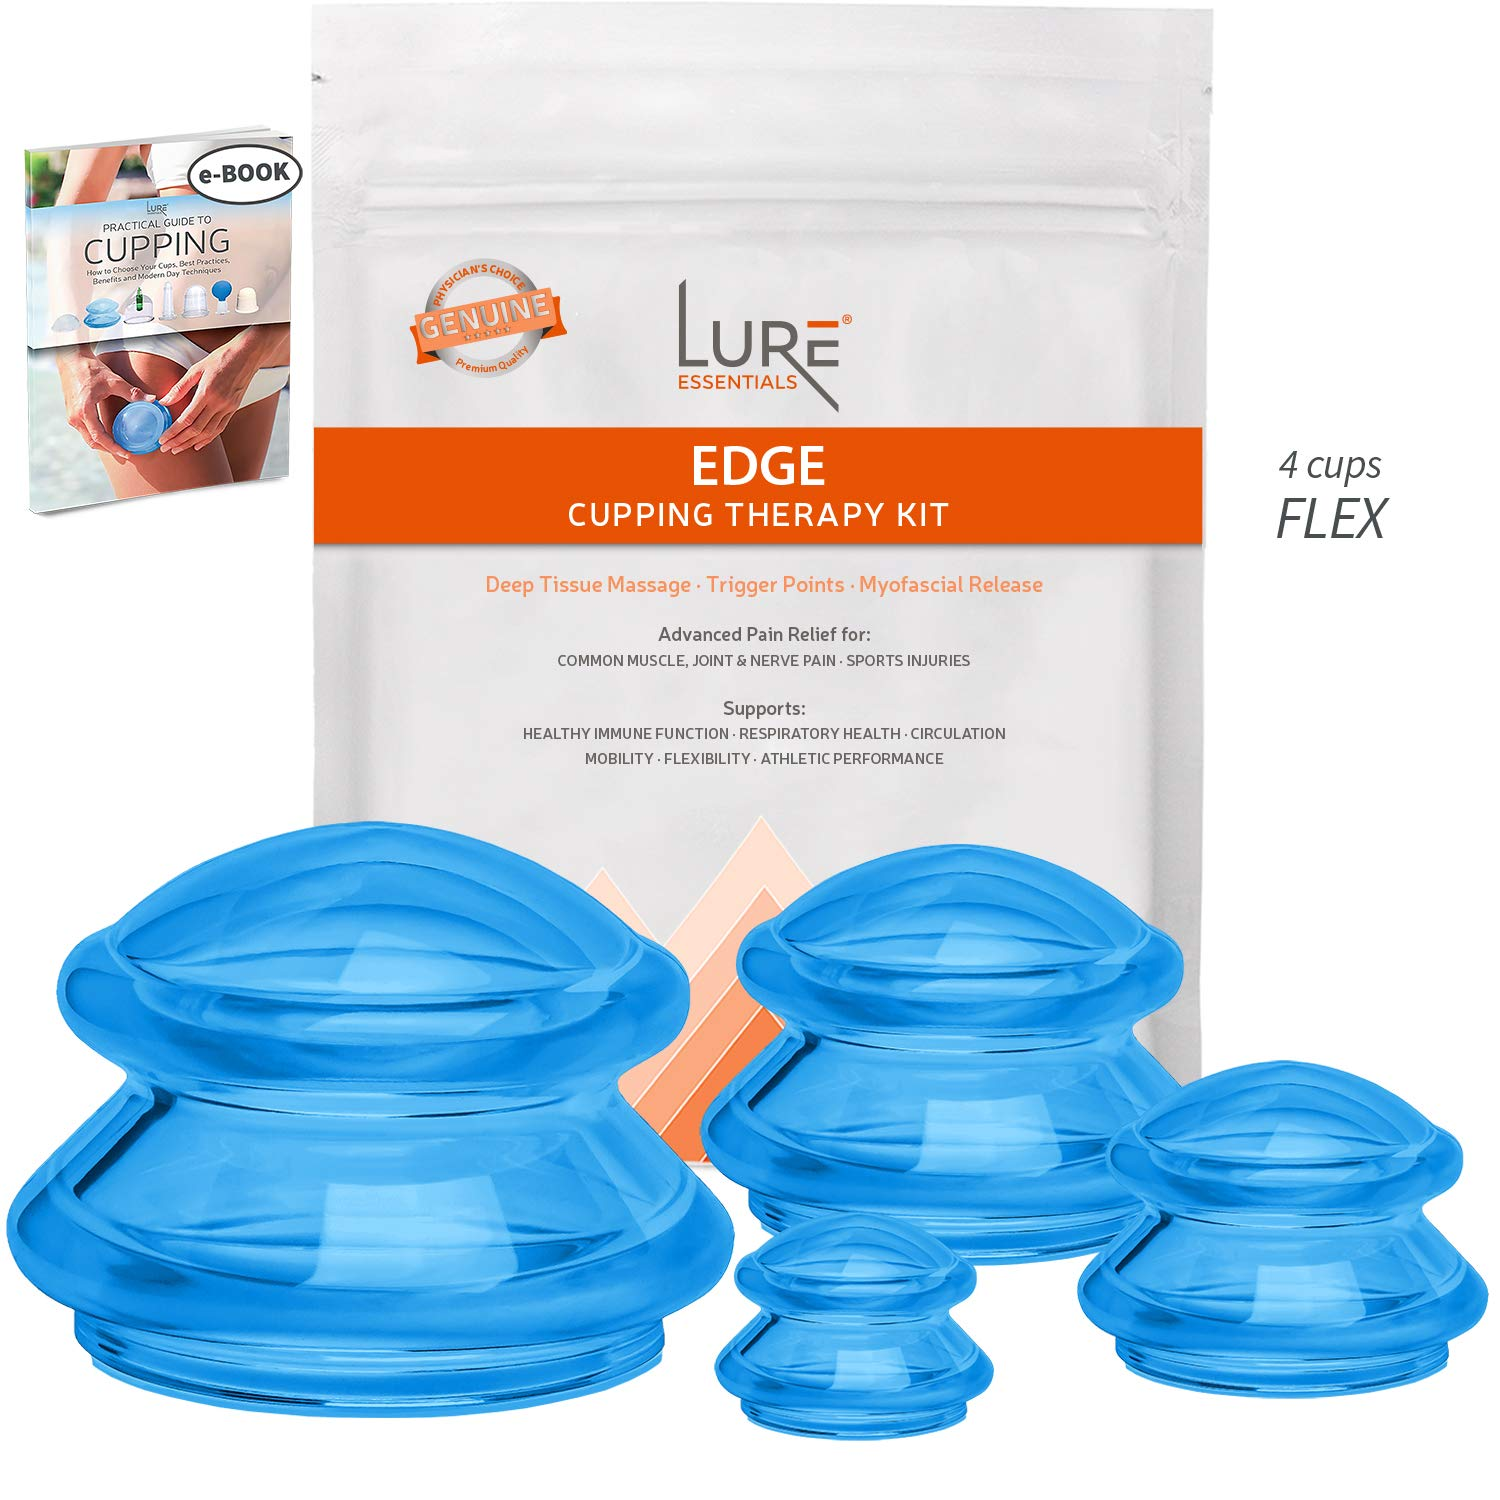 EDGE Cupping Therapy Sets Brilliant